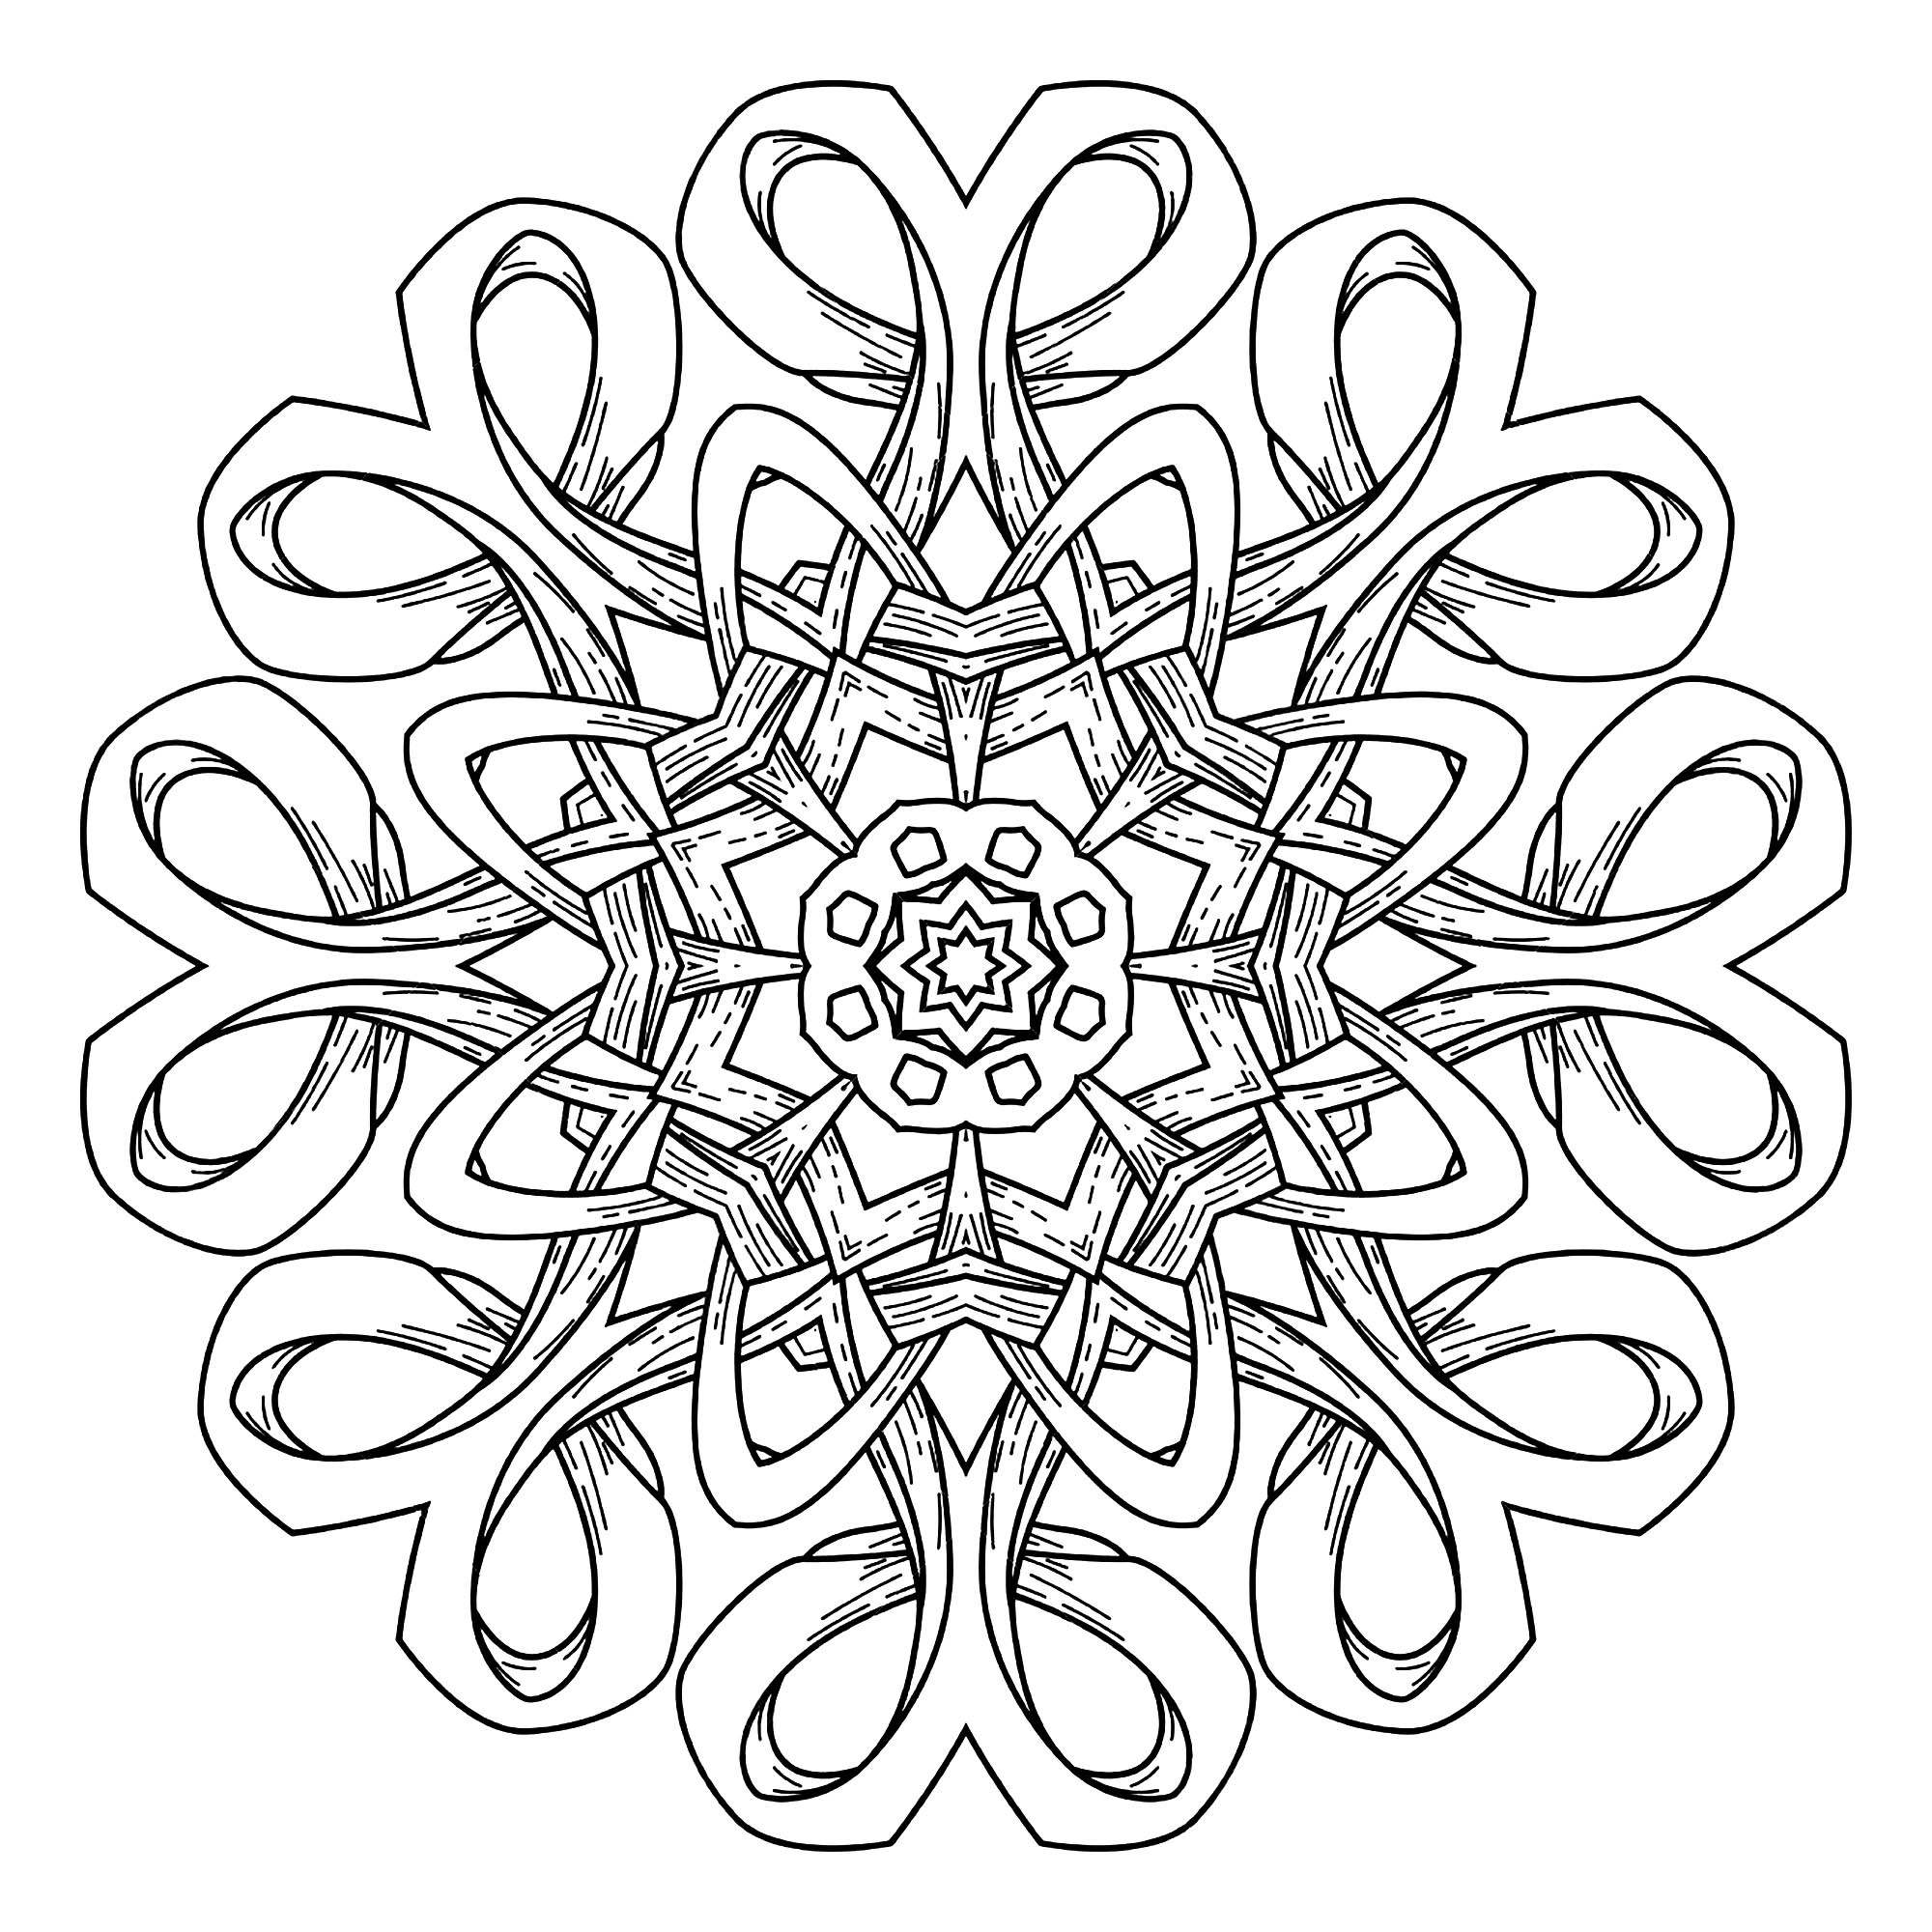 A Mandala guaranteed 100% Relaxation, for a pure ZEN moment. You will quickly feel the benefits of coloring.